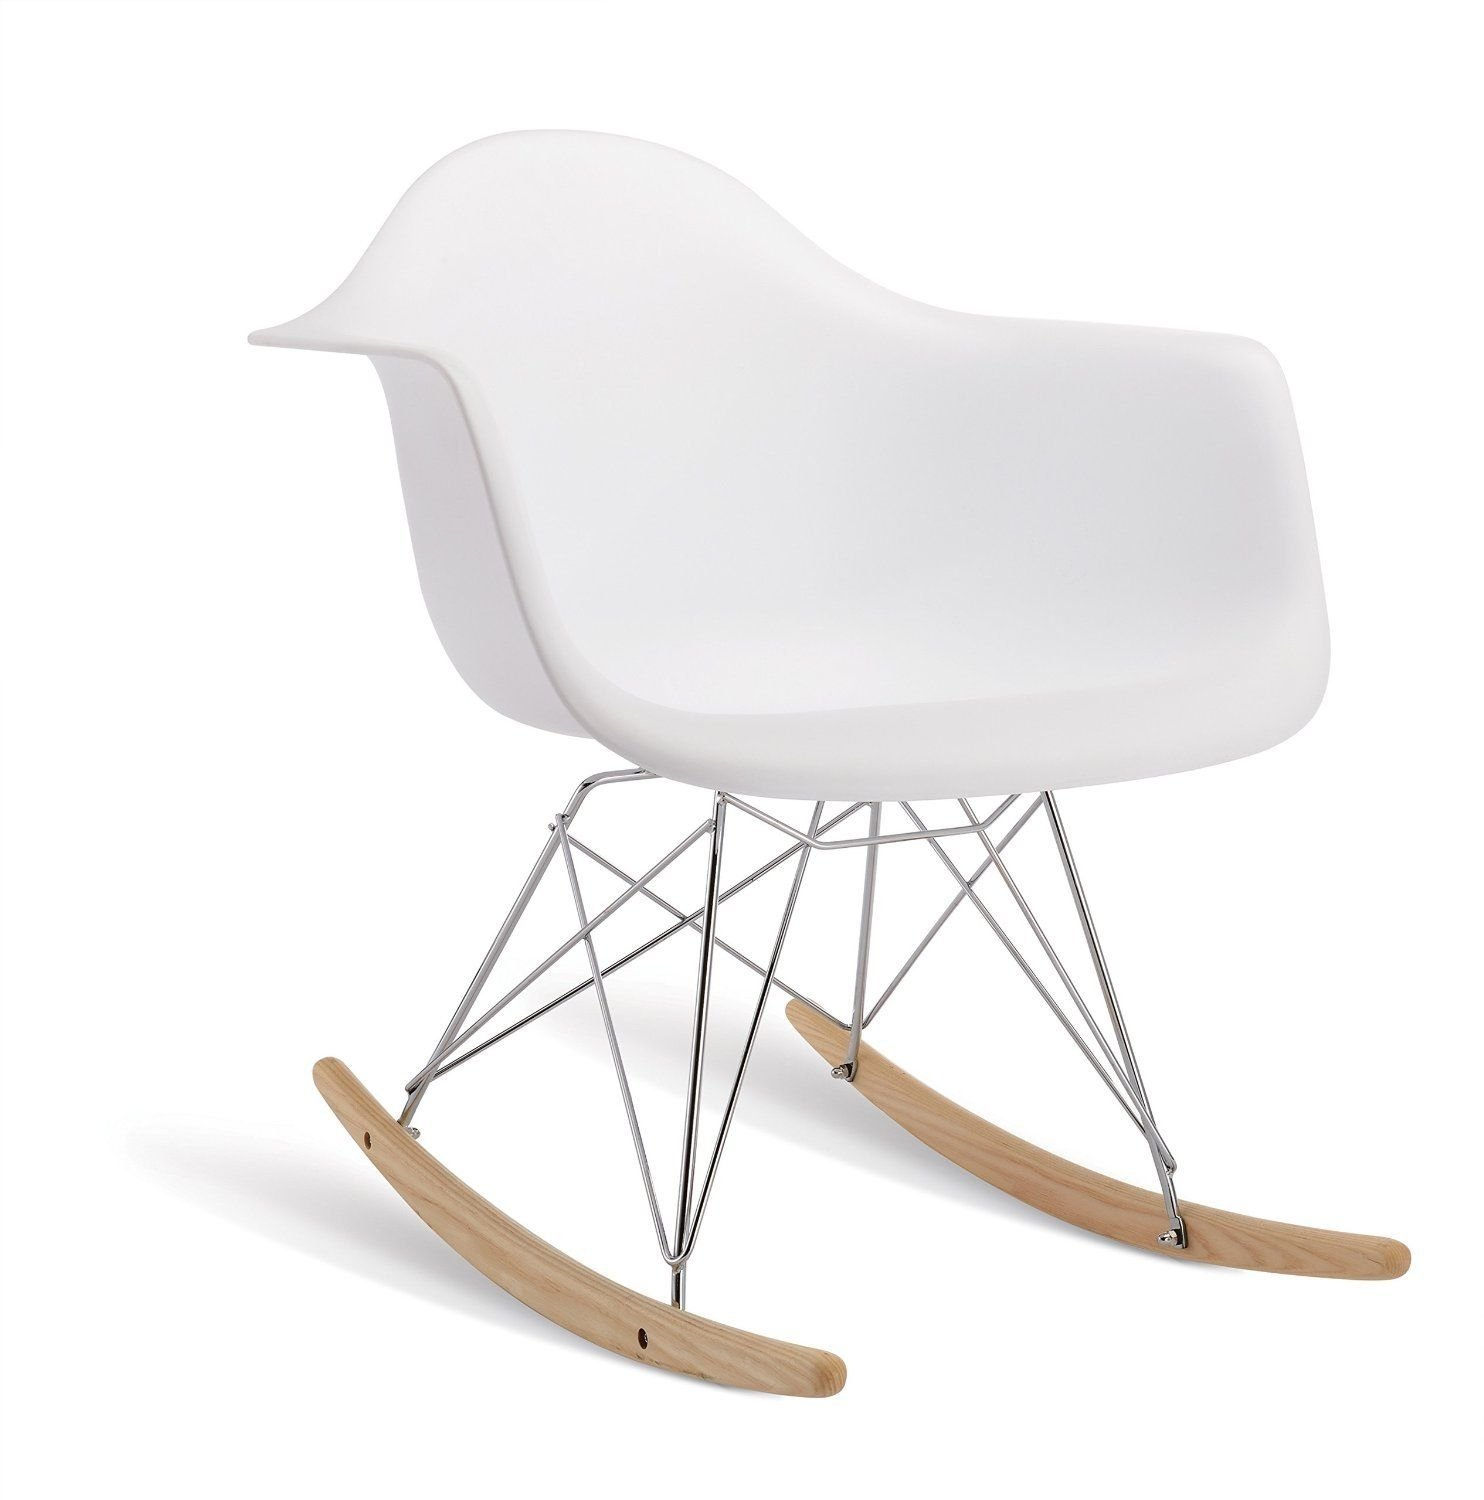 Modern Set Of 2 EAMES Style Rocking Armchair Natural Wood Legs In Color  White, Black And Red (White)